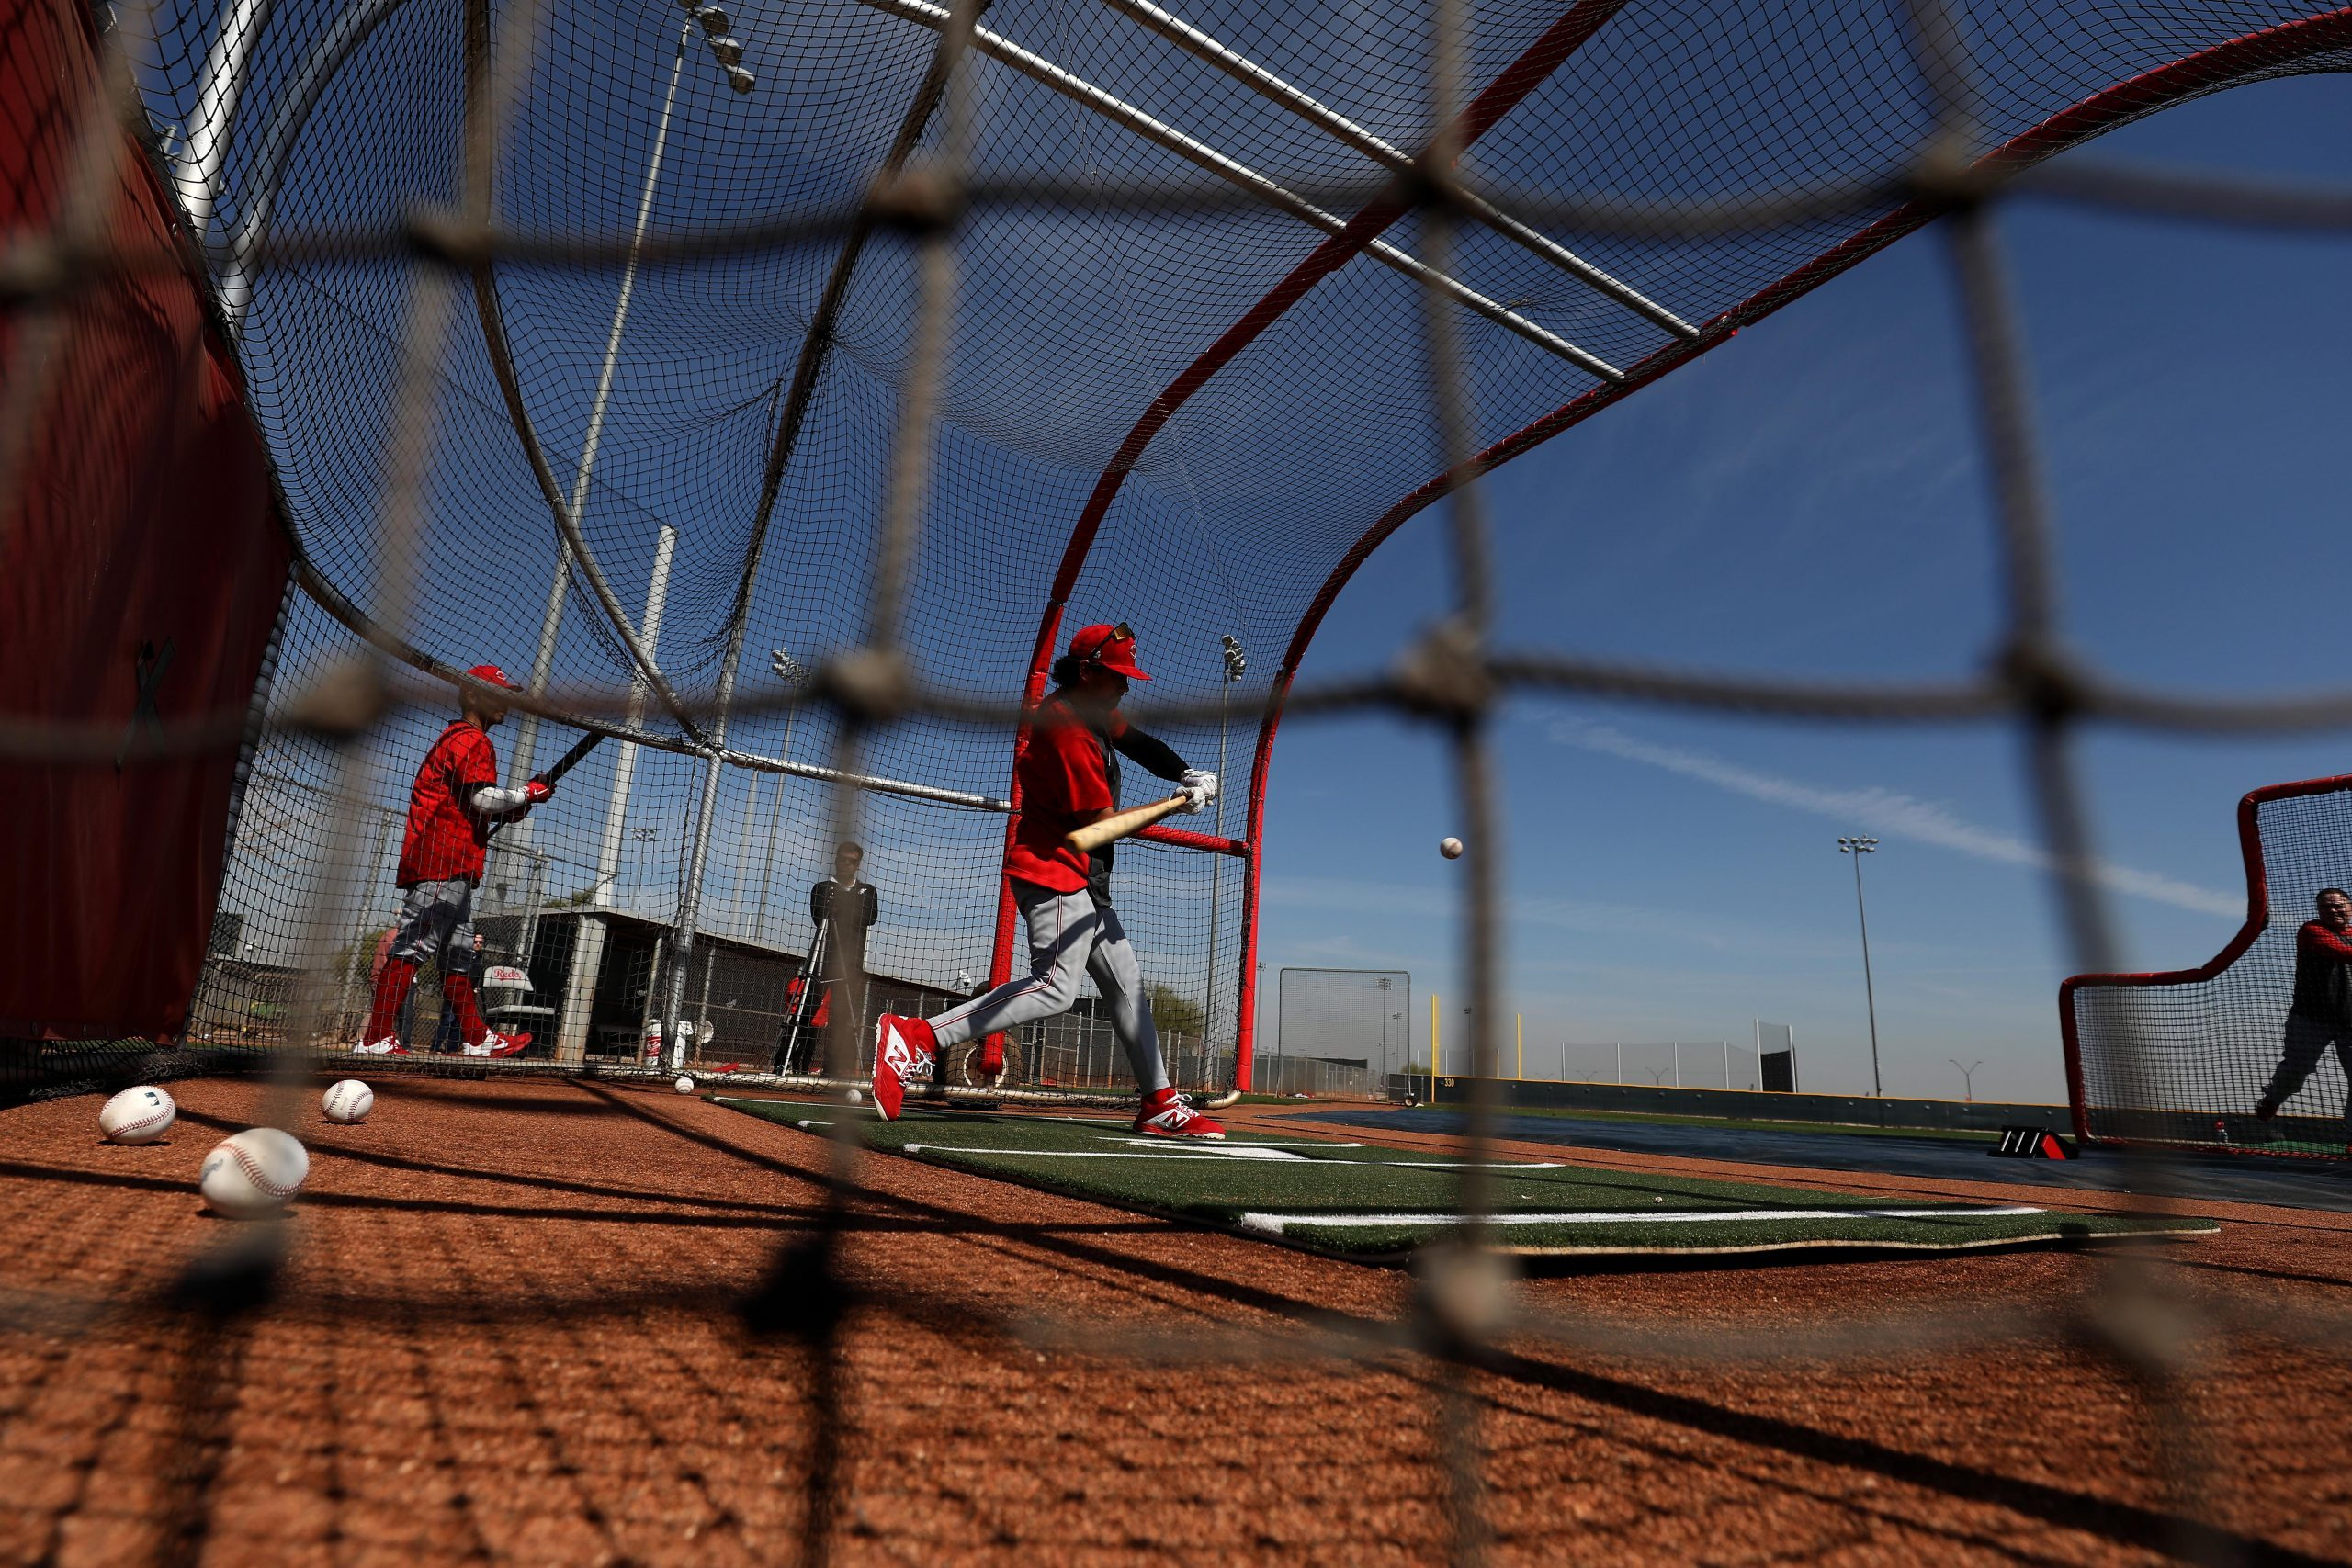 Cincinnati Reds Seeing Promising Results After 3 Spring Training Games